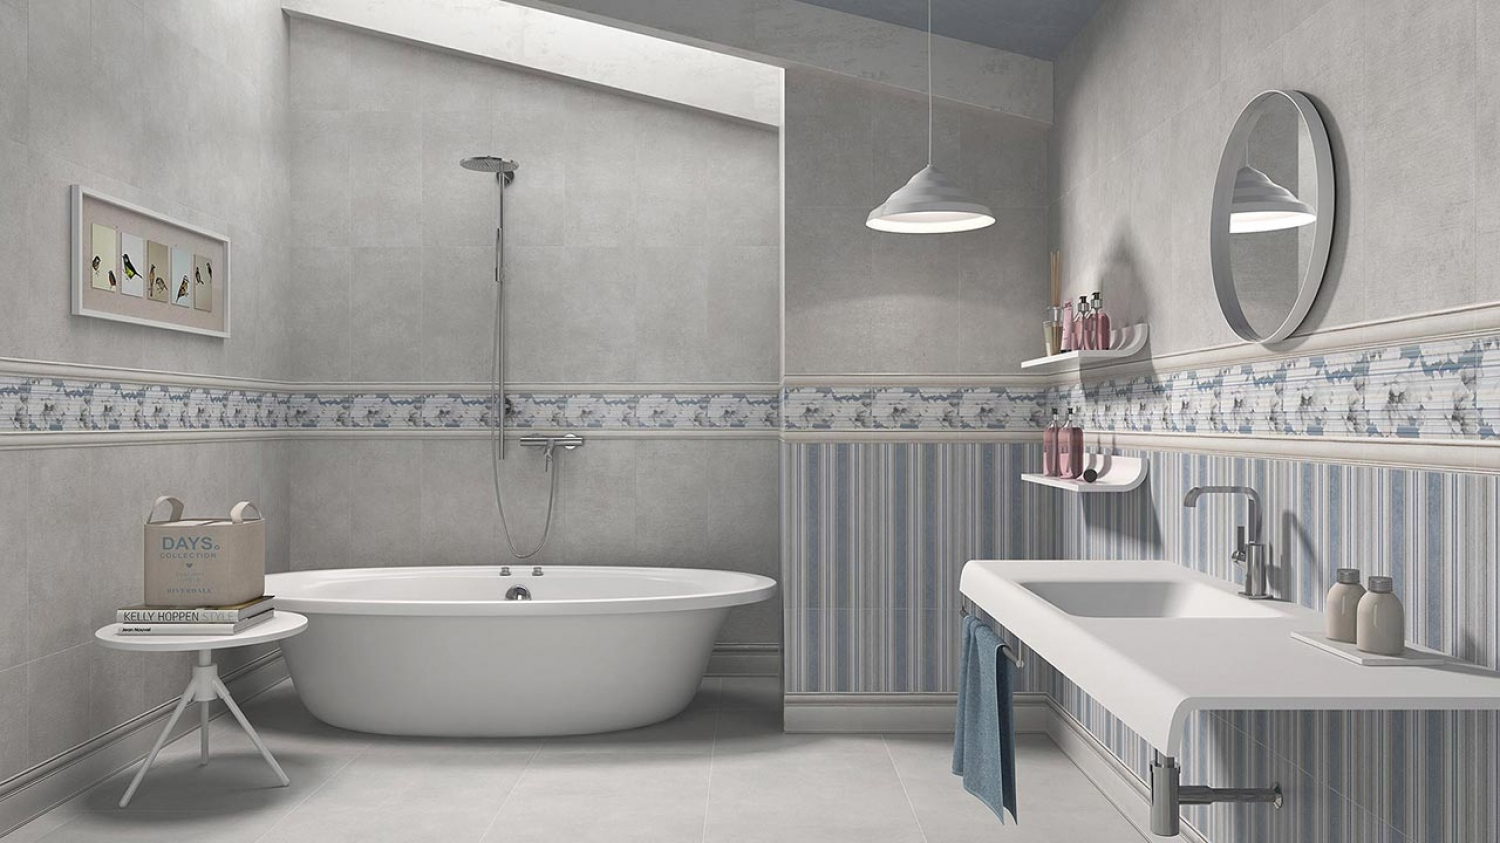 Our Tile, Your Style